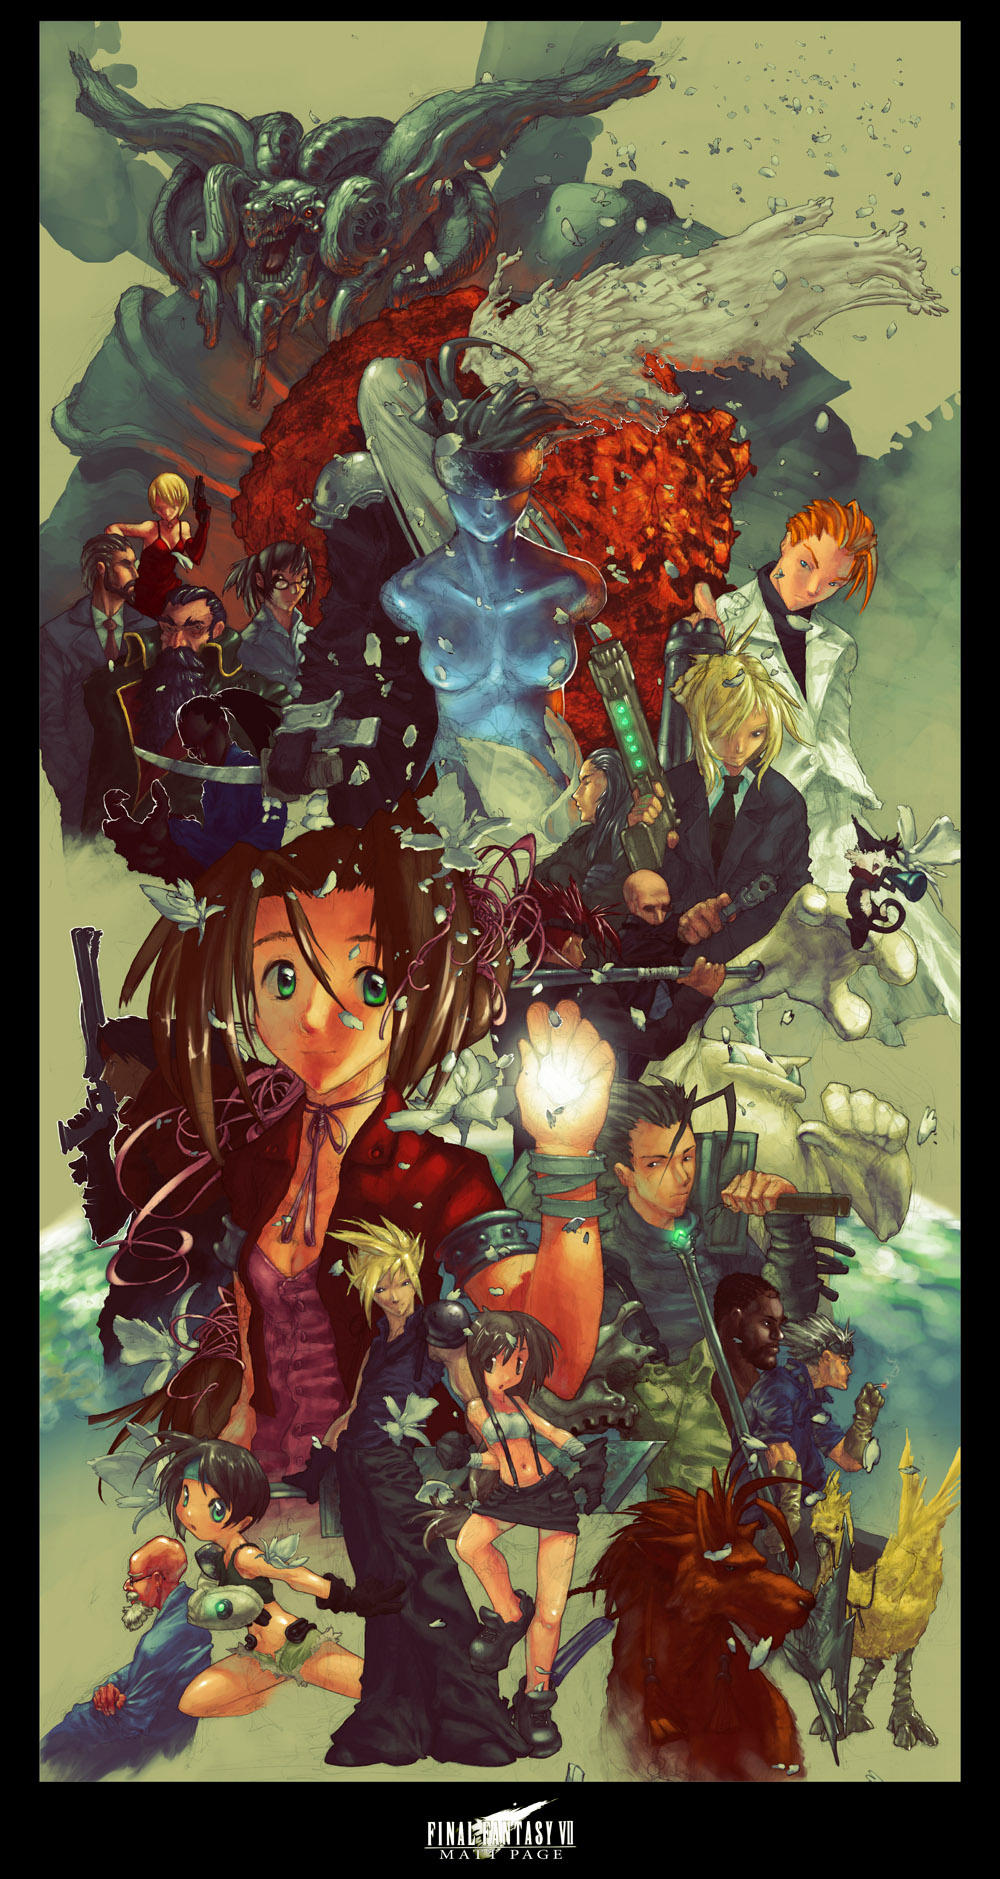 Final Fantasy VII ULTIMATE by fallout161